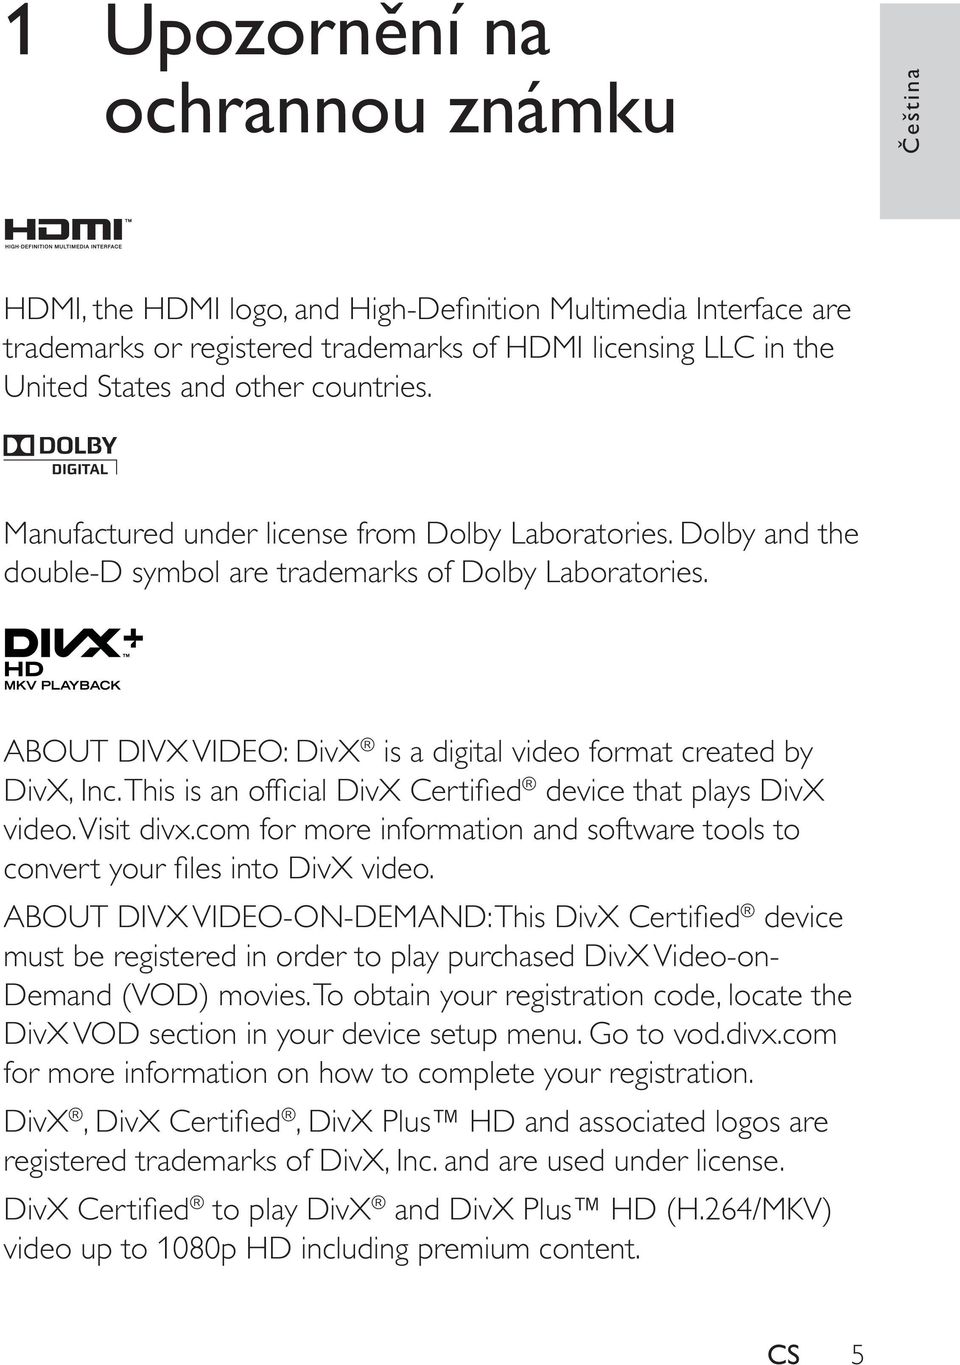 ABOUT DIVX VIDEO: DivX is a digital video format created by DivX, Inc. This is an official DivX Certified device that plays DivX video. Visit divx.